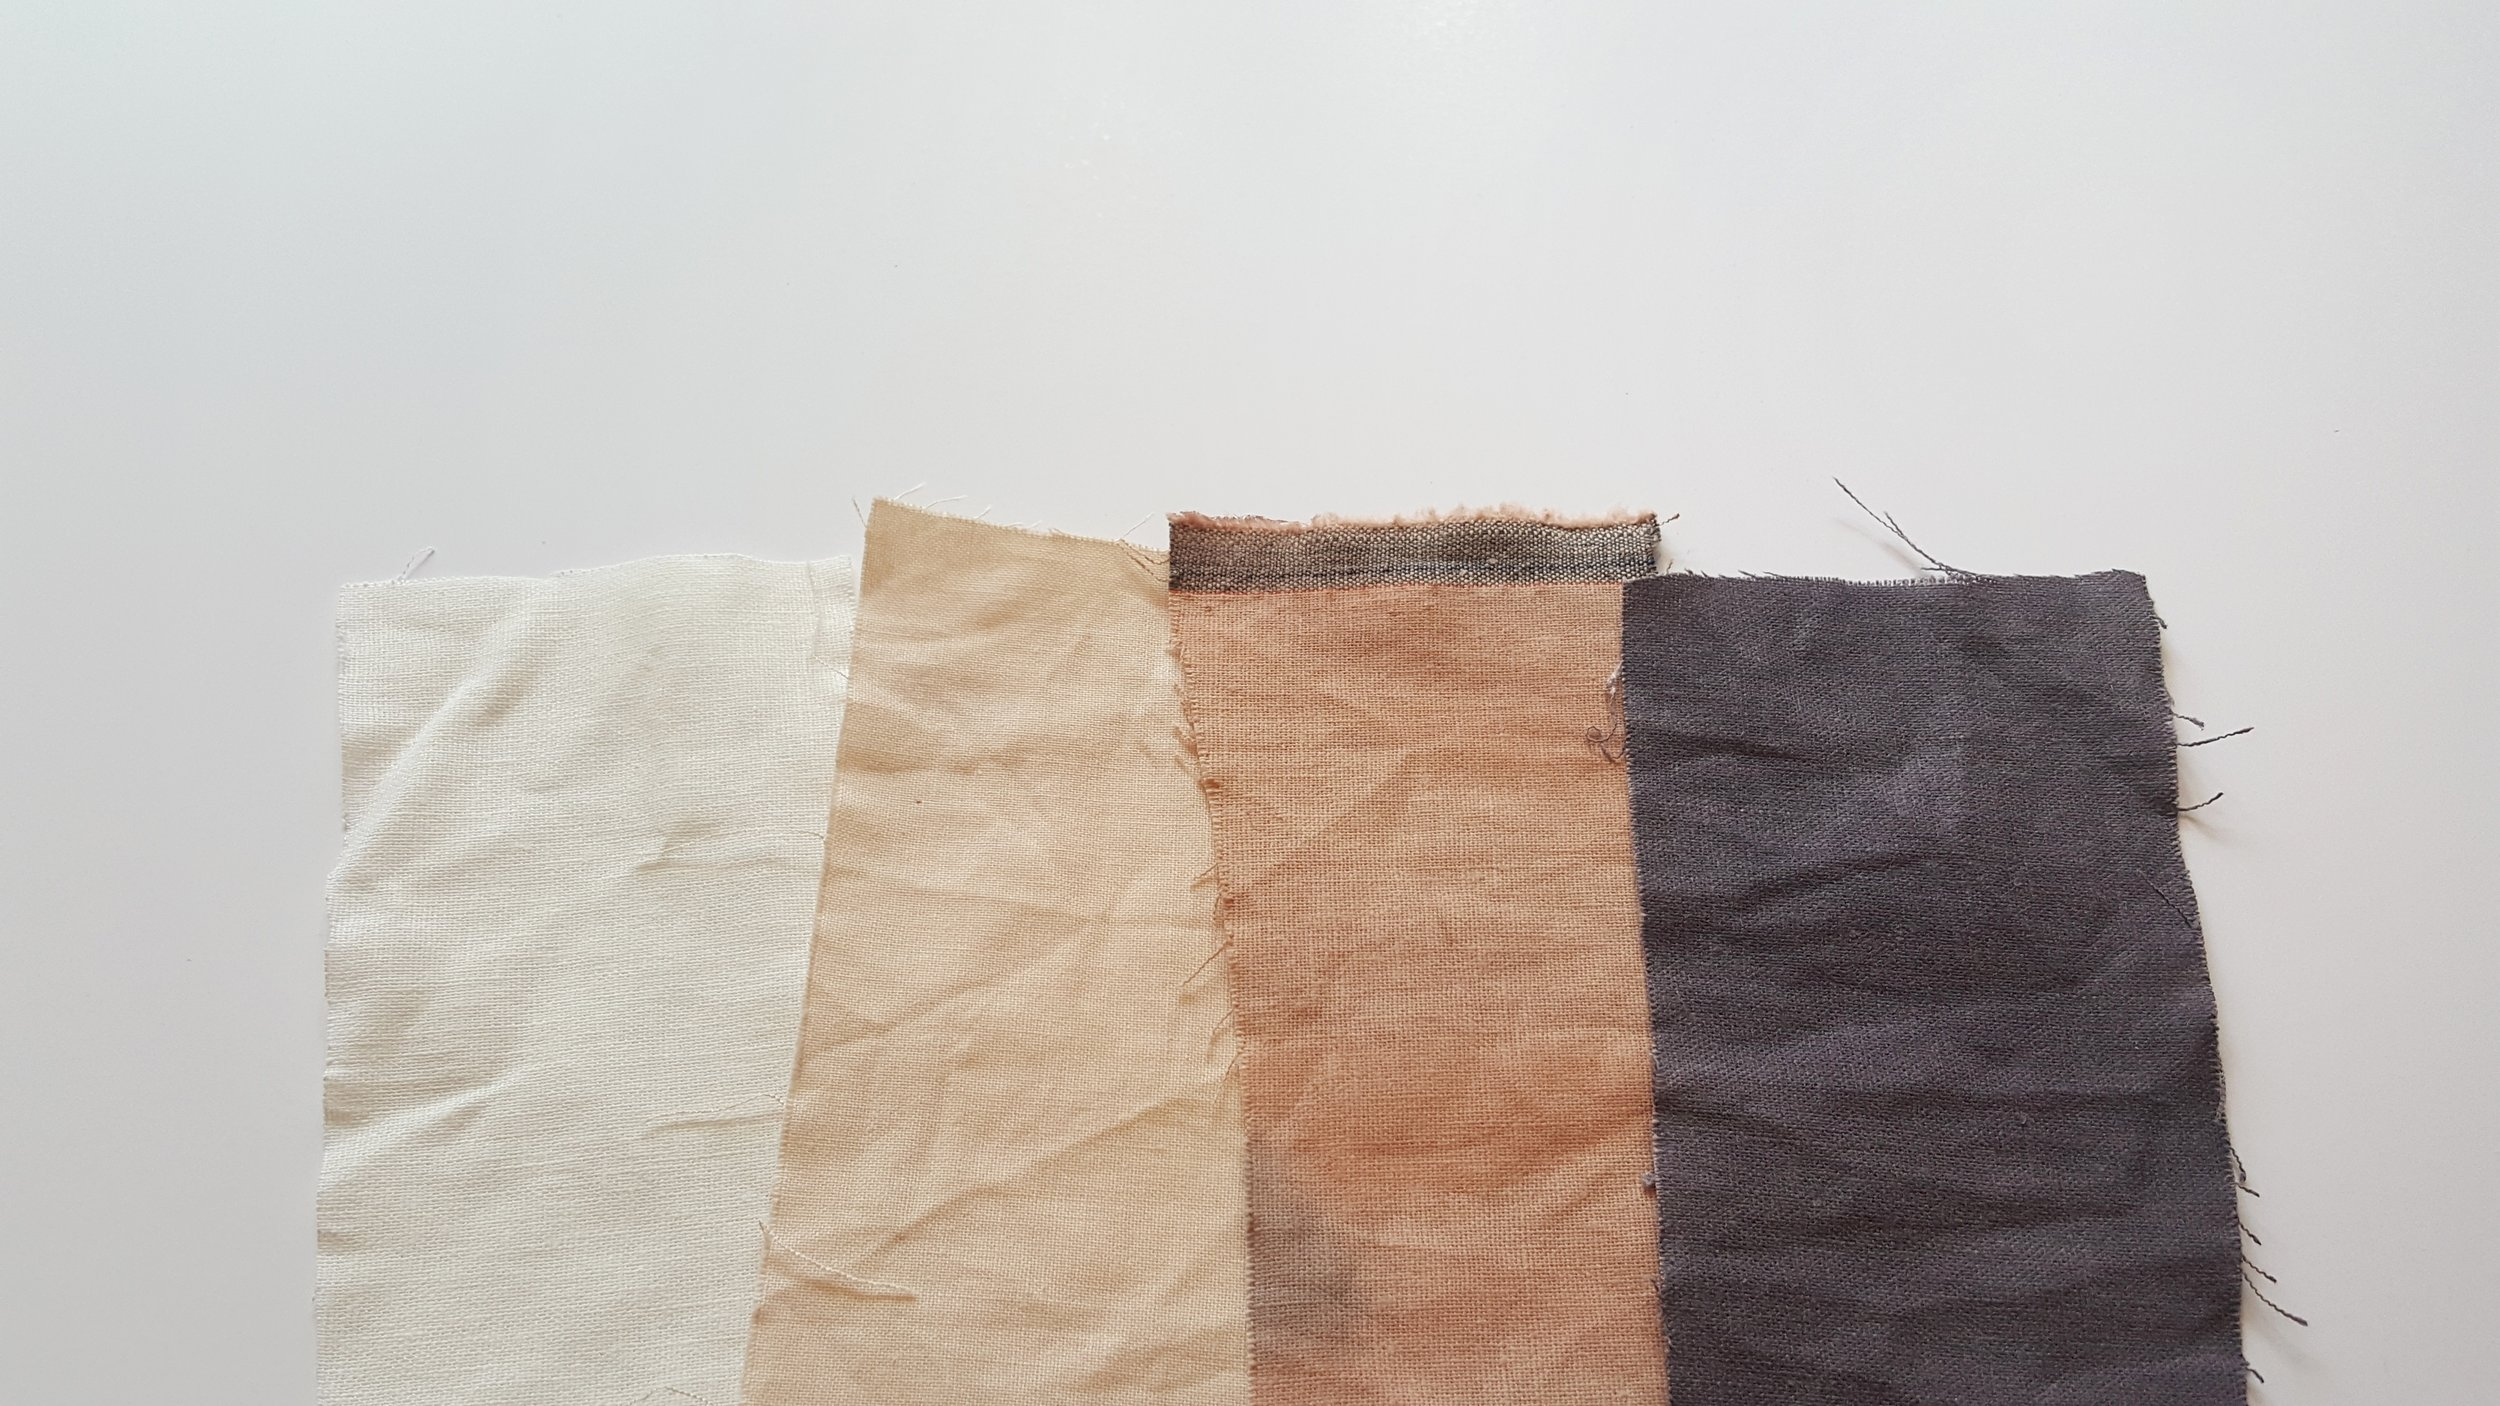 From left to right: 1. white cotton/ linen blend (no dye), 2. cotton/ linen blend with no mordant and avocado dye, 3. cotton/ linen blend with a soy mordant and an avocado dye, 4. cotton/ linen blend with a soy mordant, avocado dye and a dash of iron added to dye bath.